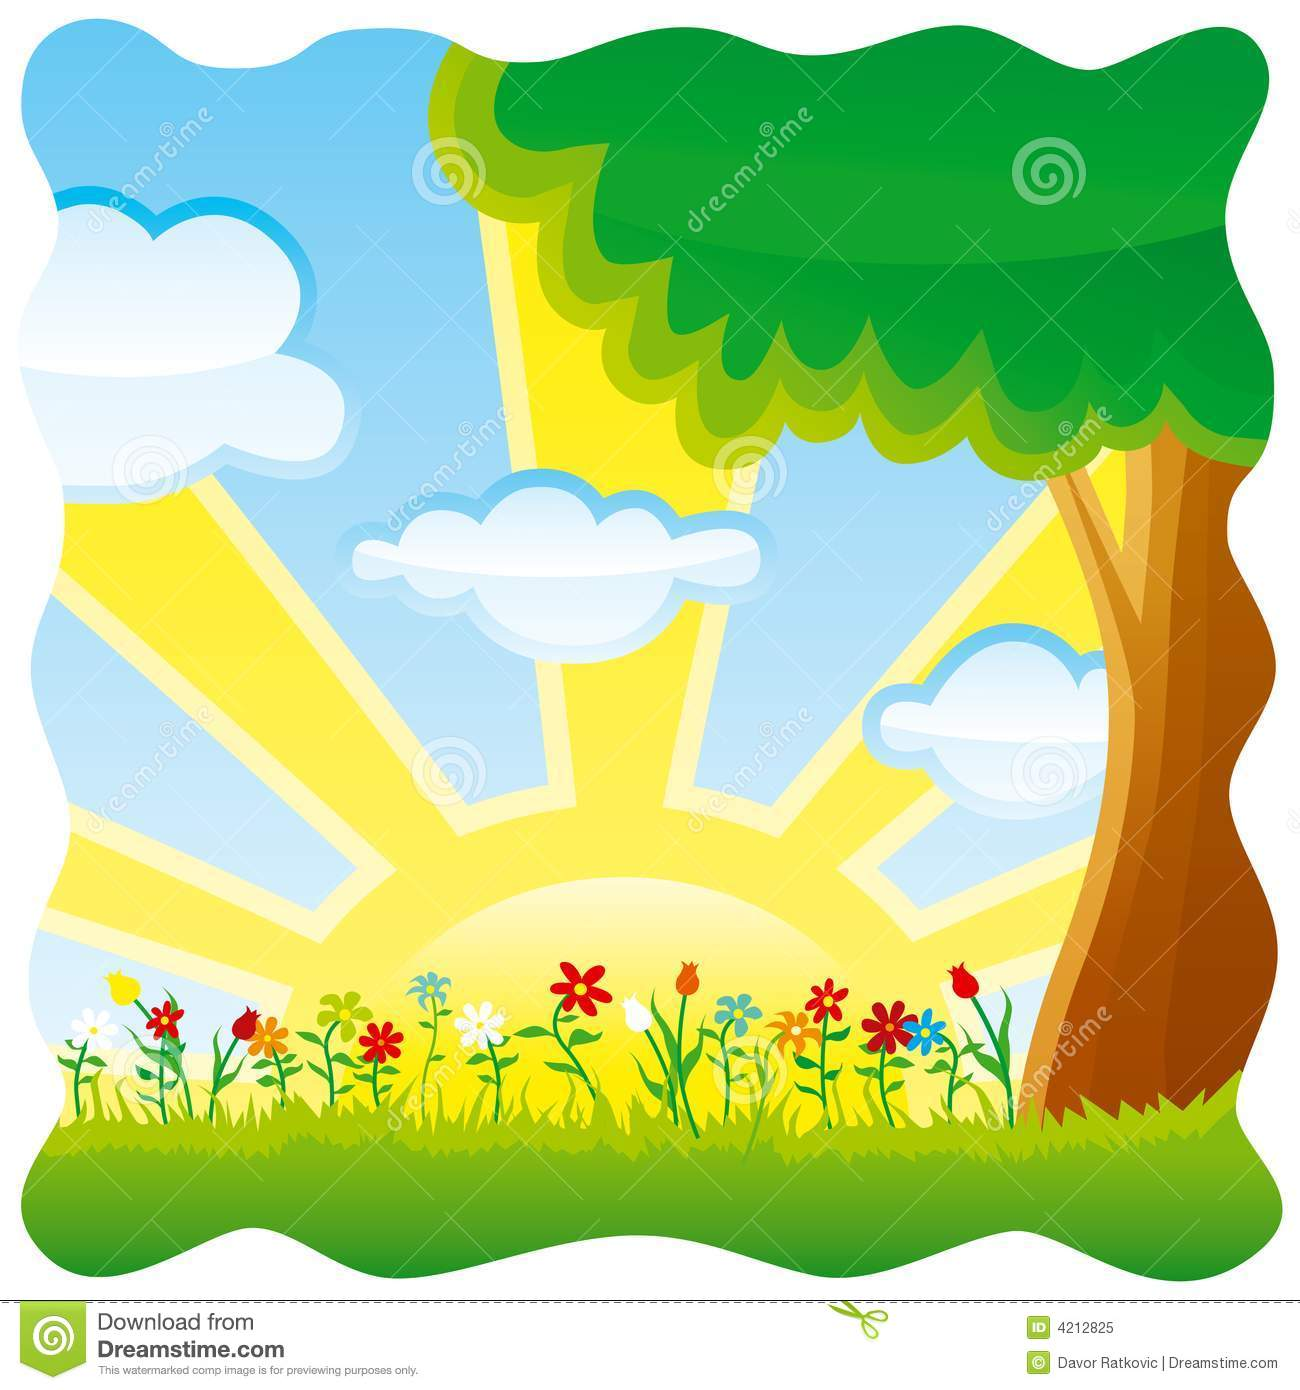 Nature cliparts banner free download Clip art nature scenes - ClipartFest banner free download